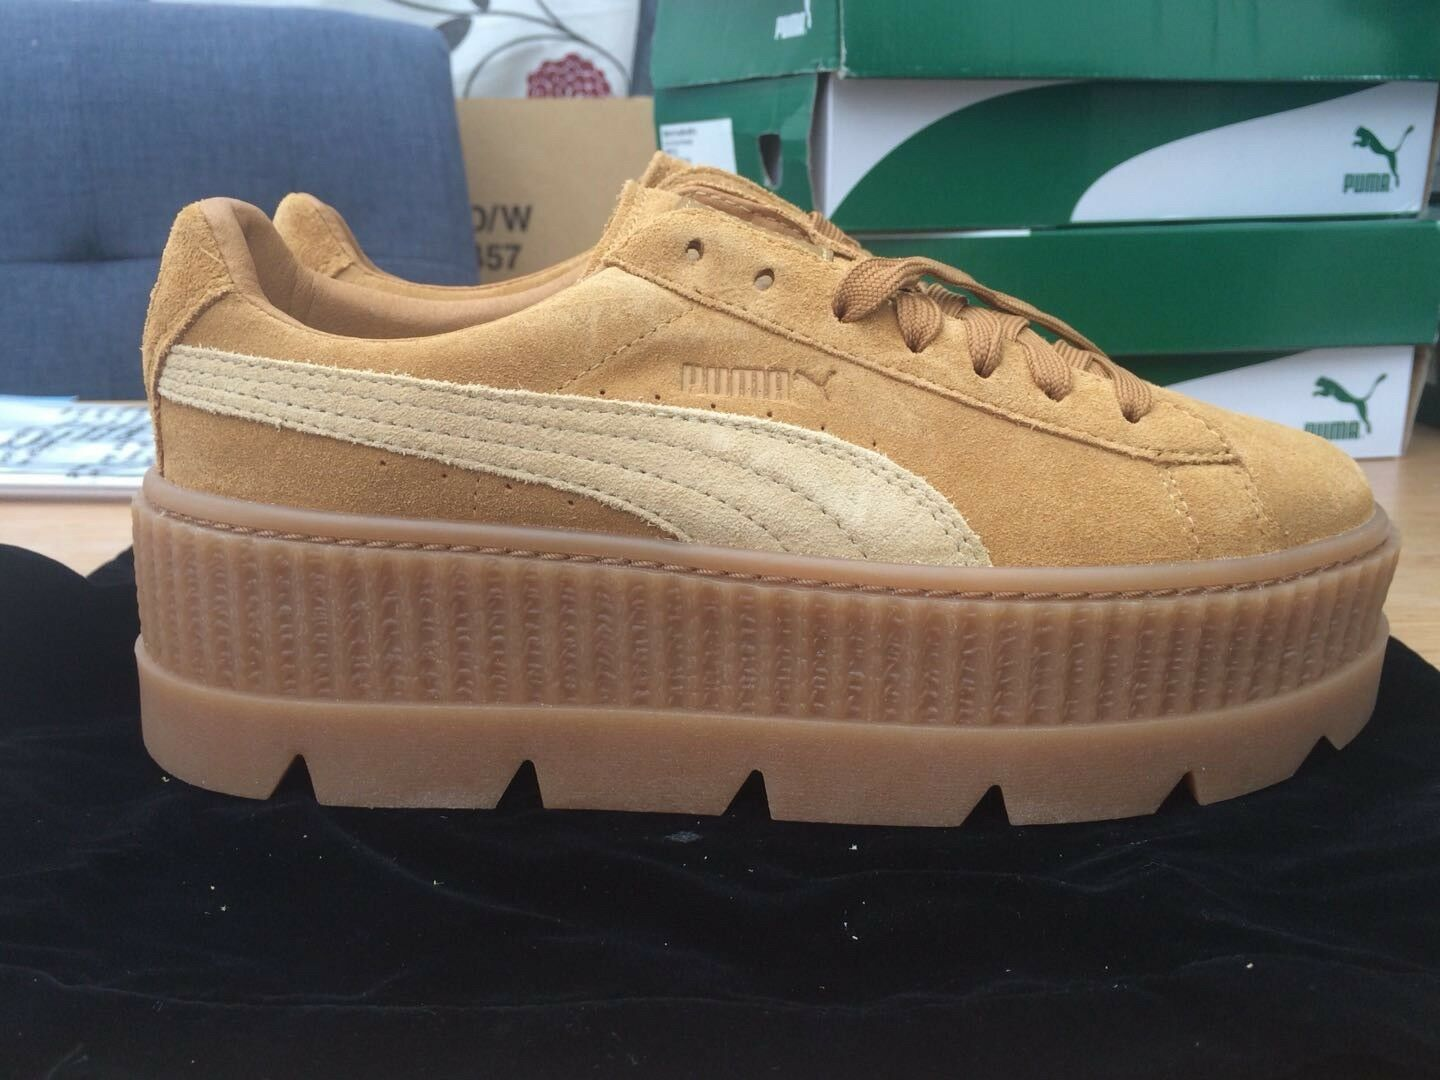 New Authentic Puma Fenty Cleated Creeper Trainer Golden Brown Suede